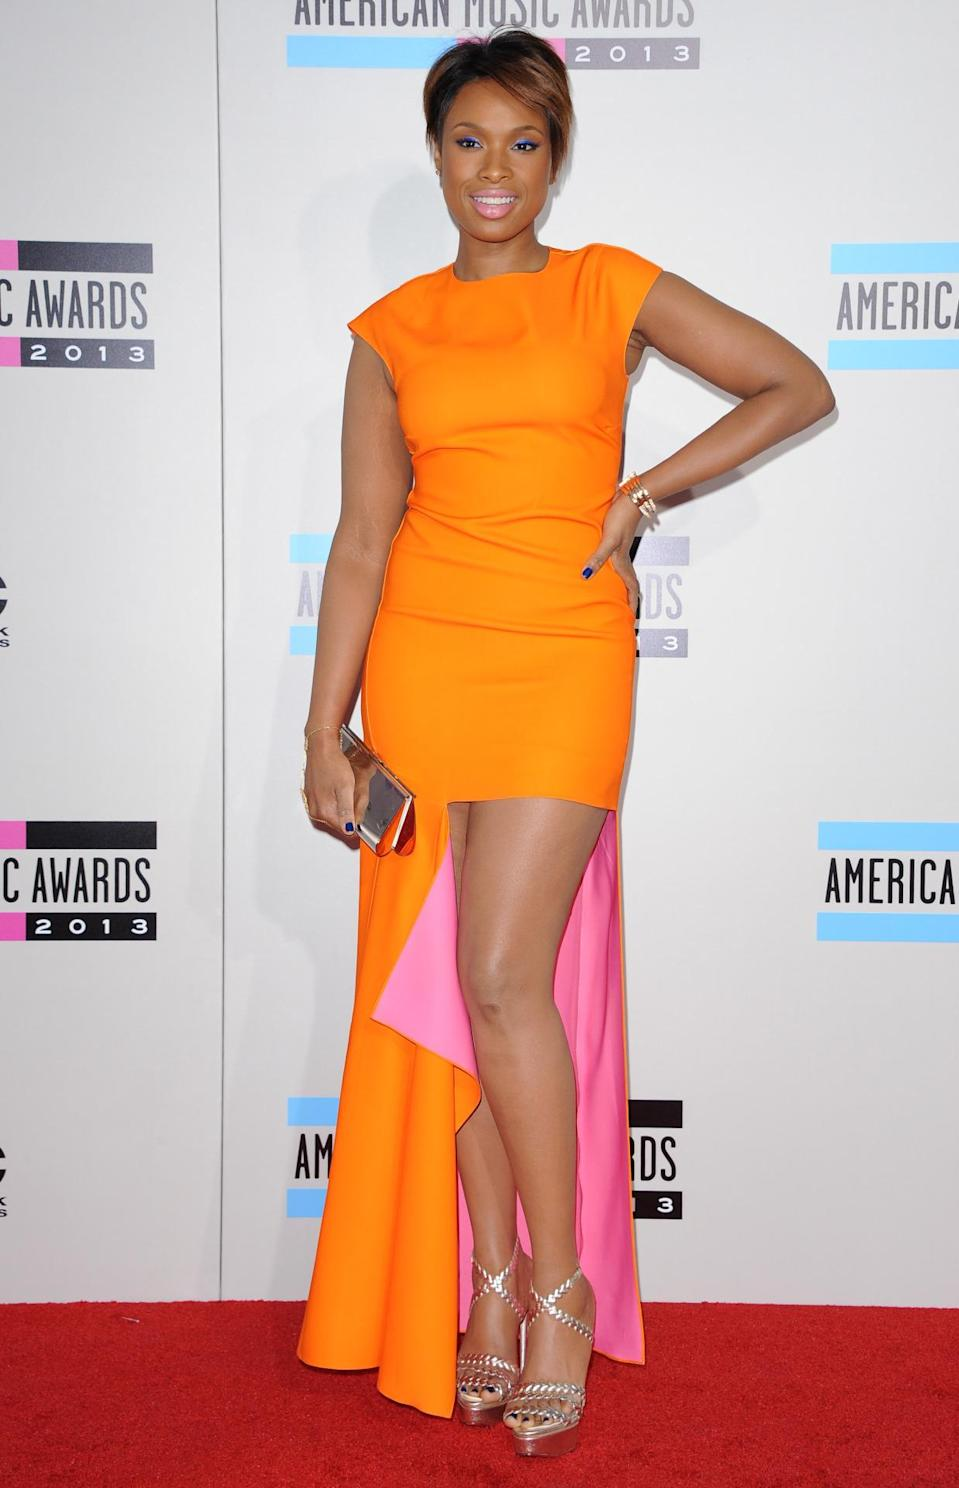 The Dior dress Jennifer Hudson wore to the American Music Awards in 2013 was all orange except for the pink lining, which was visible because of the torn up aspect.